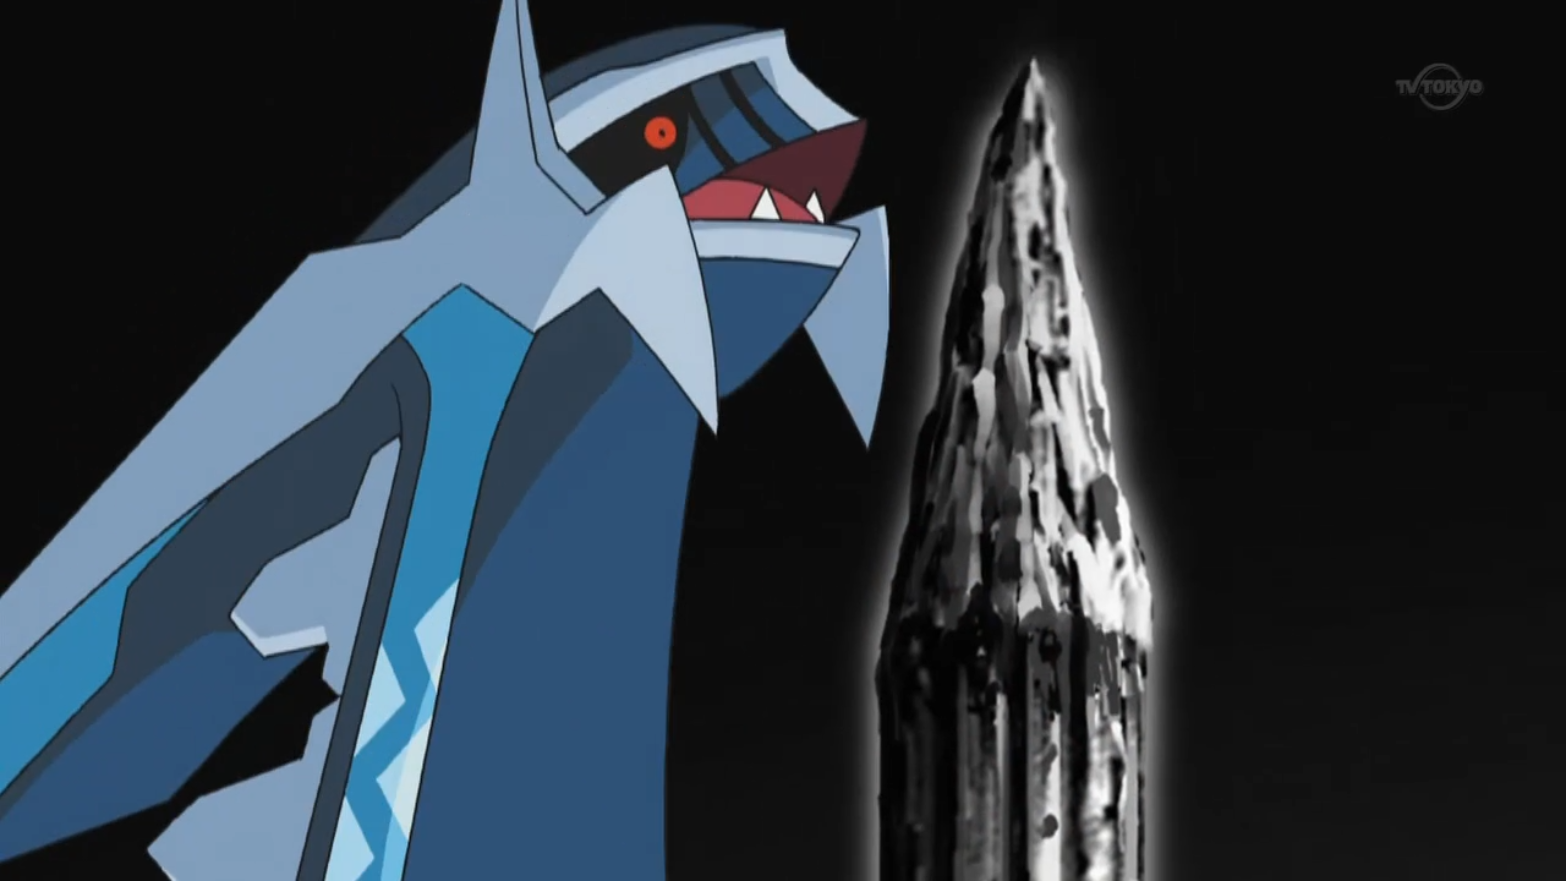 Dialga, along with Palkia, was summoned by Cyrus on the Spear Pillar. They were under his control through the use of the Red Chain and were tasked by him to open a portal to another dimension, wanting a world of his own. After the Red Chain's destruction and Cyrus's exit, Dialga, as well as Palkia, begins to rampage, creating a danger for the entire region of Sinnoh. However, the two were calmed down and sent away with the help of Azelf, Mesprit, and Uxie.